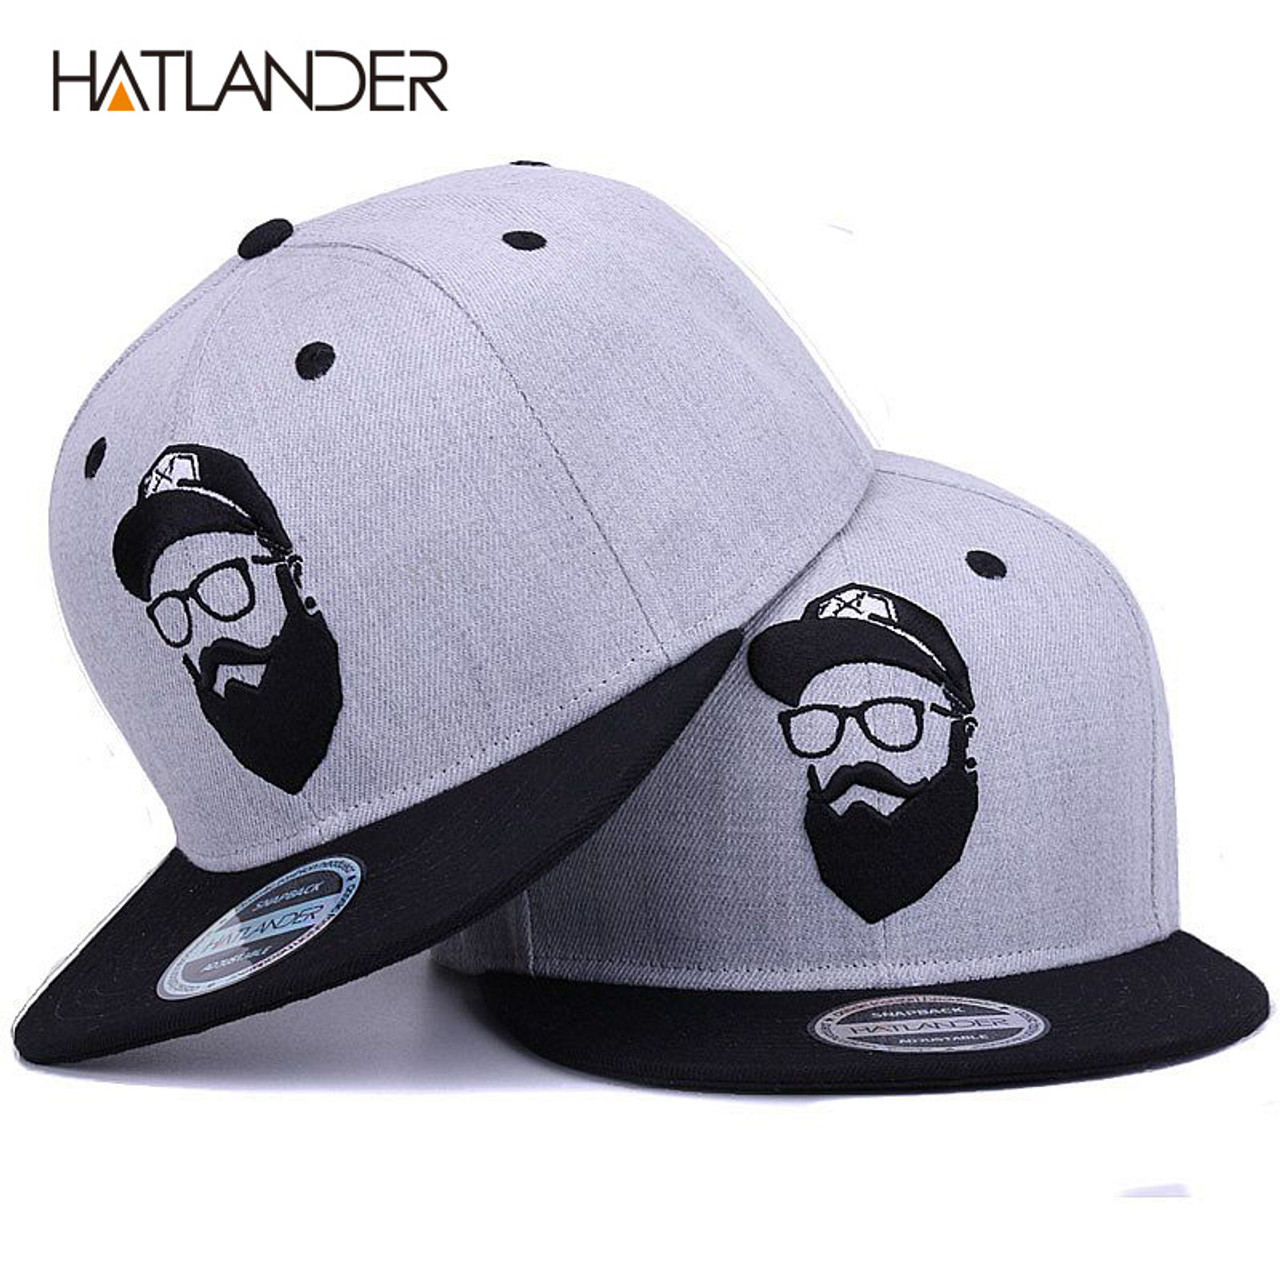 de0c25c38cf61  HATLANDER Original grey cool hip hop cap men women hats vintage embroidery character  baseball ...